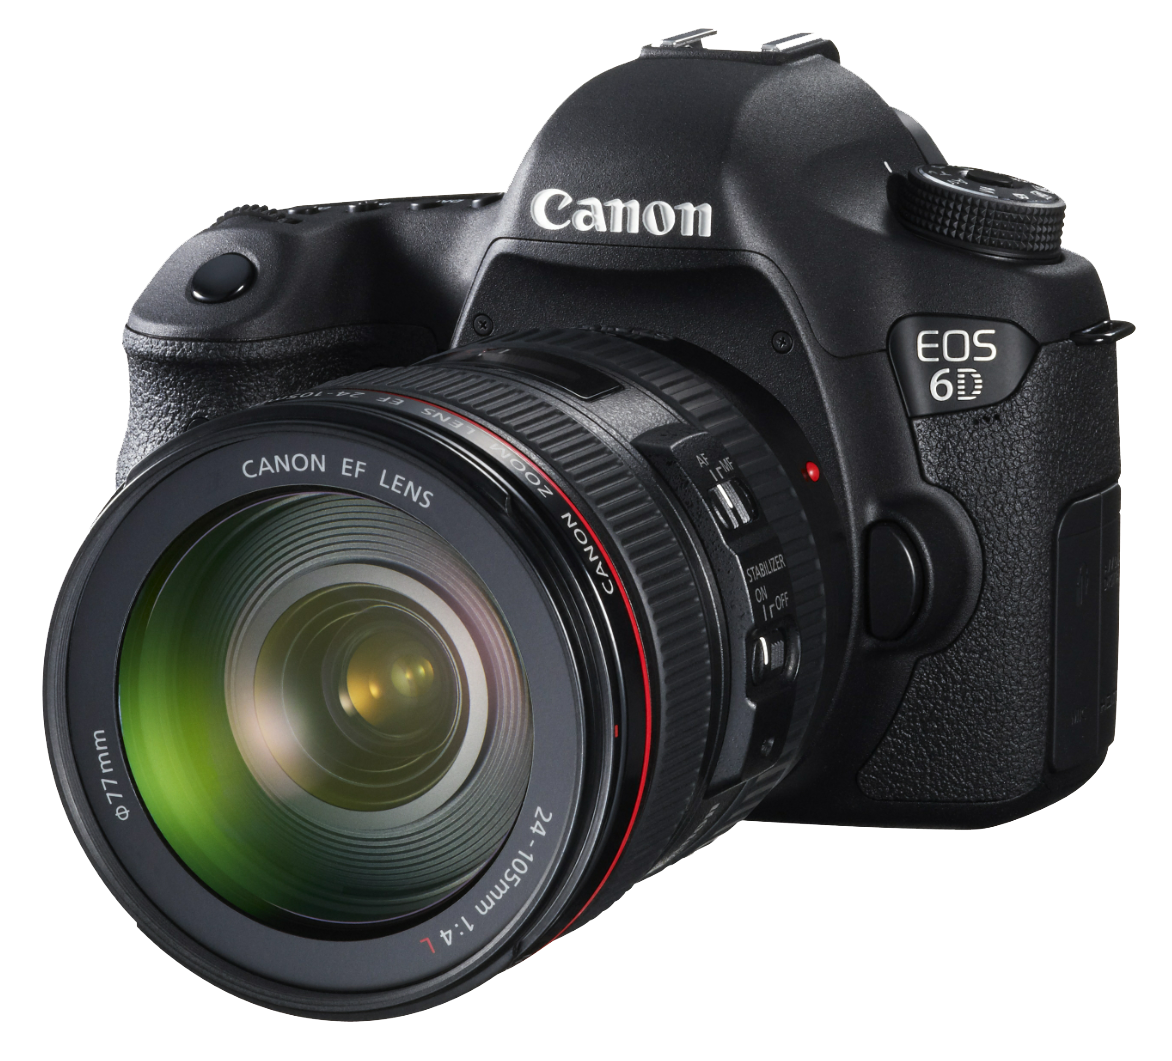 Image result for DSLR cameras png